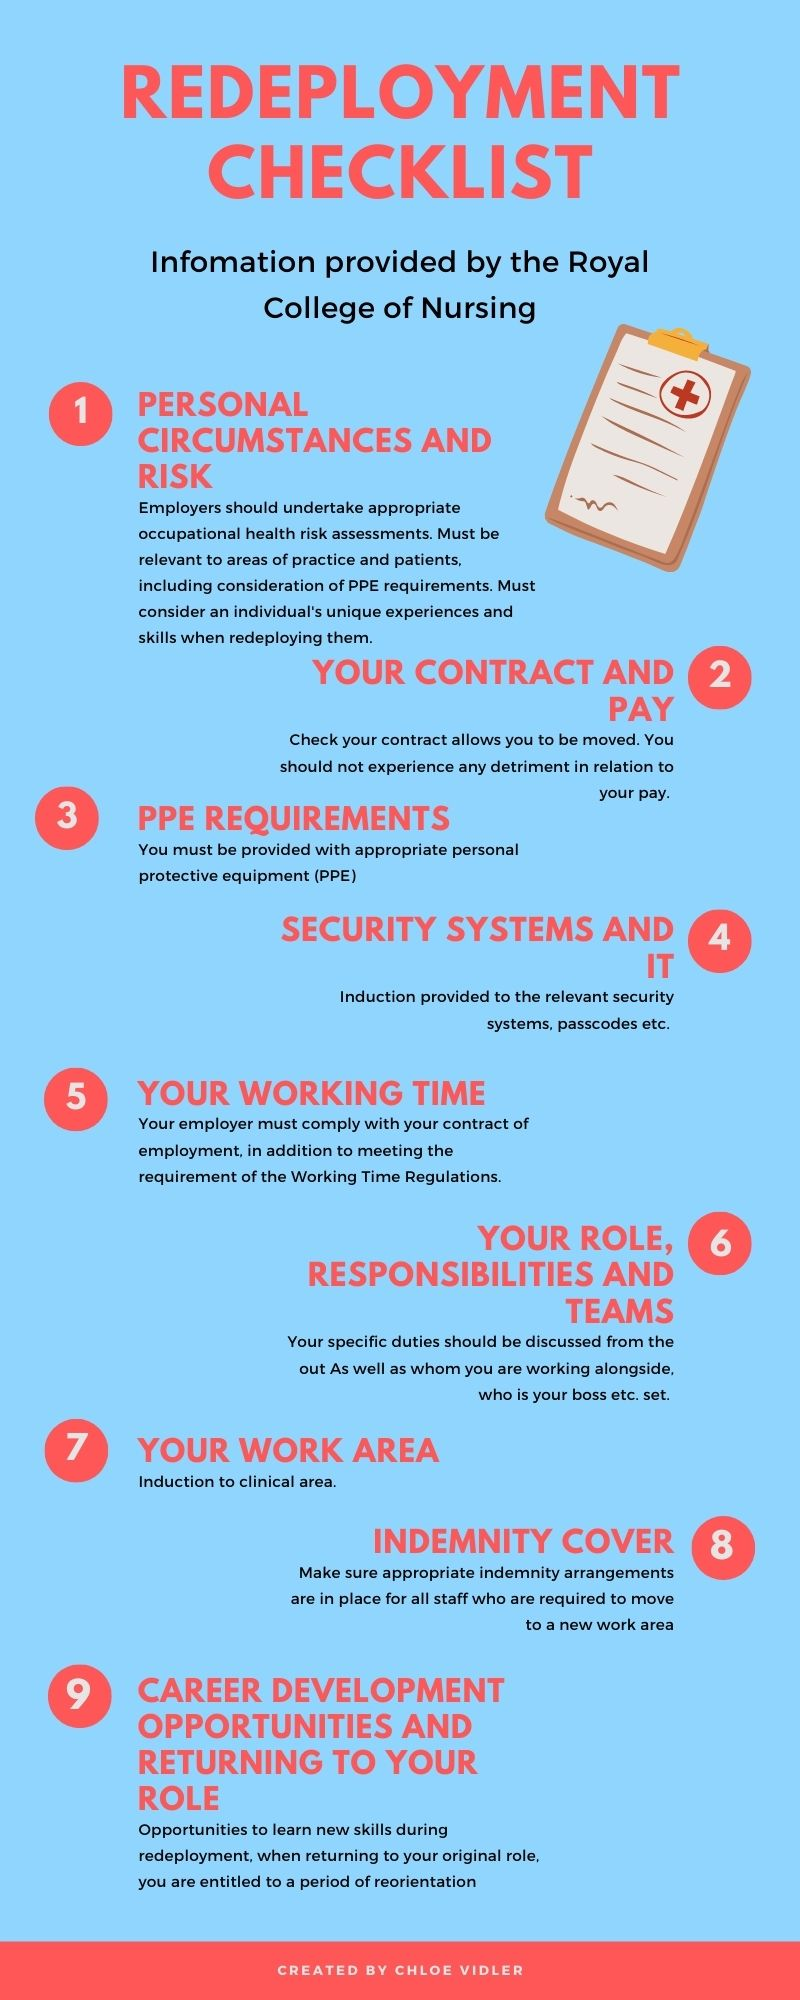 Infrographic of redeployment checklist as provided by the Royal College of Nursing